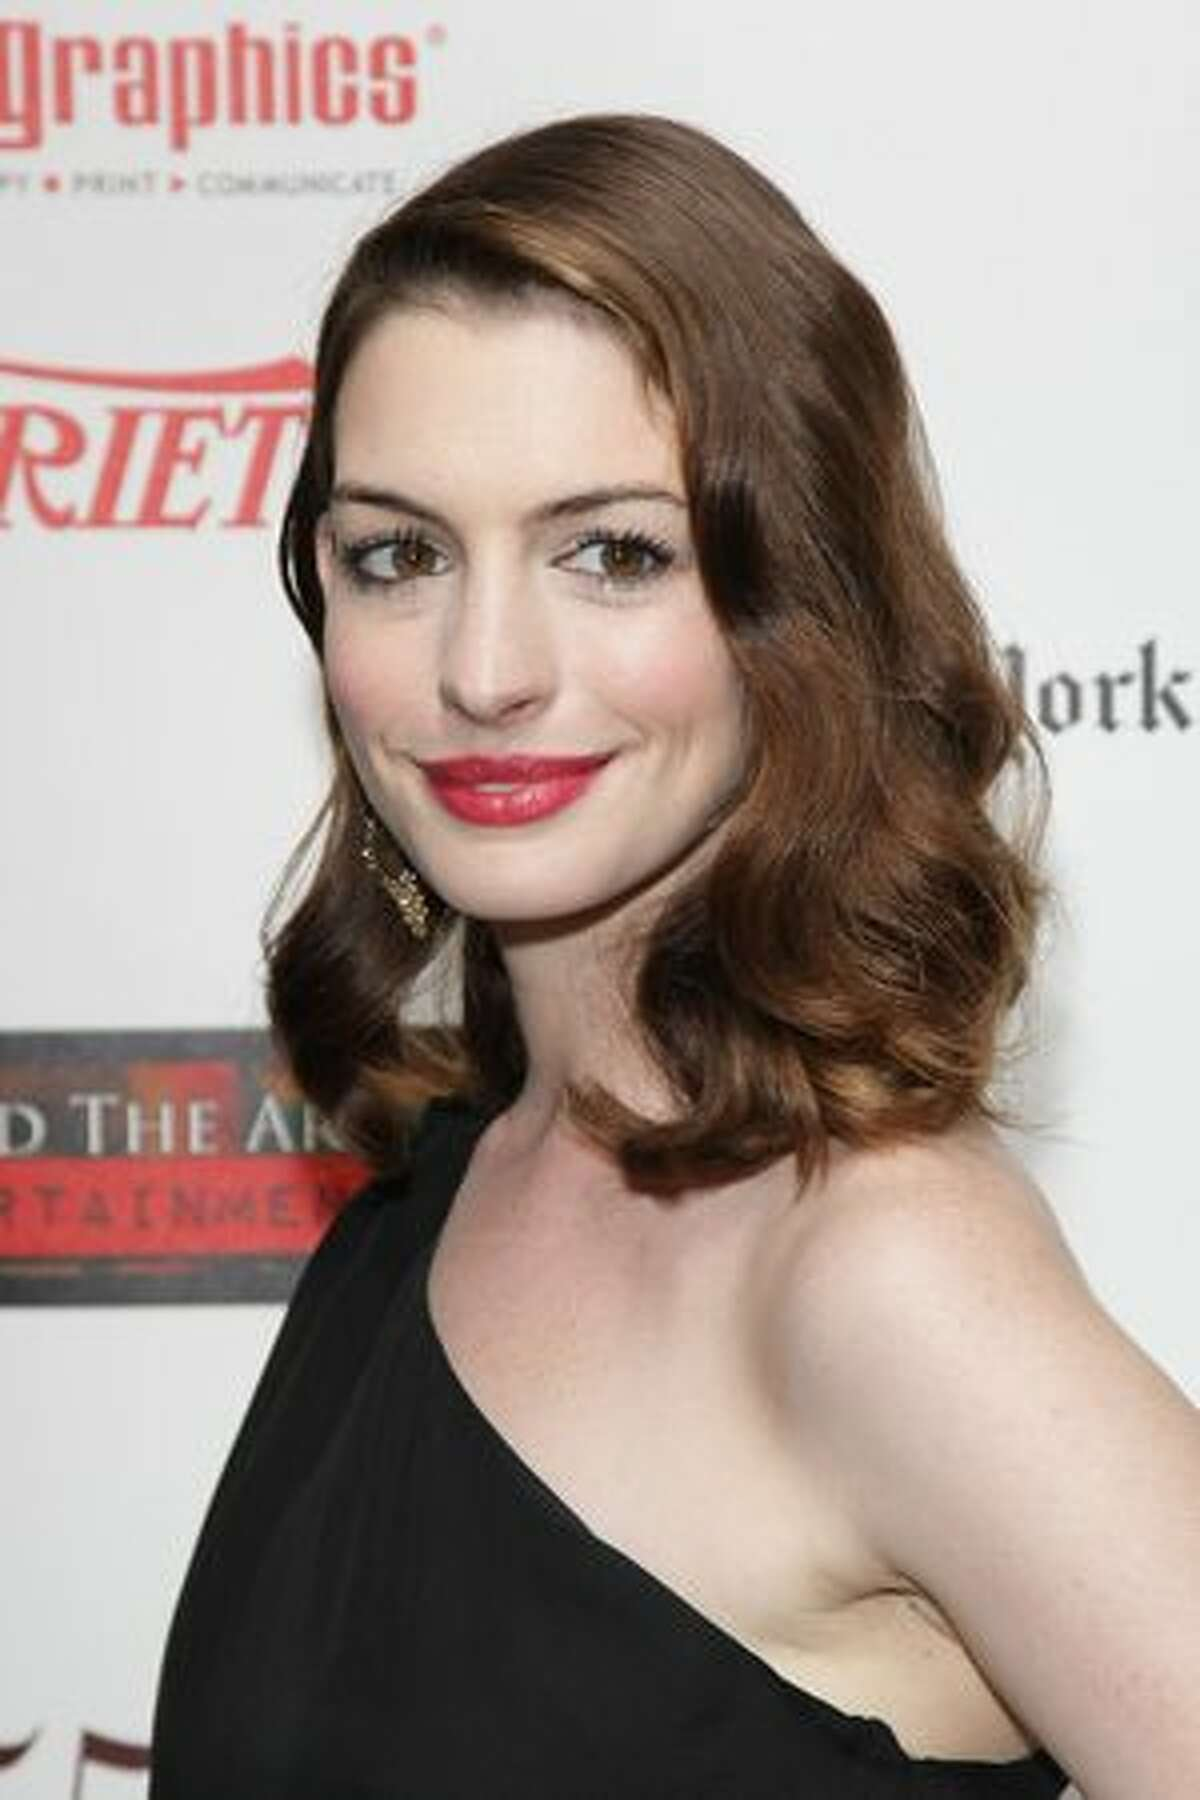 Anne Hathaway, May 23, 2010, age 27.